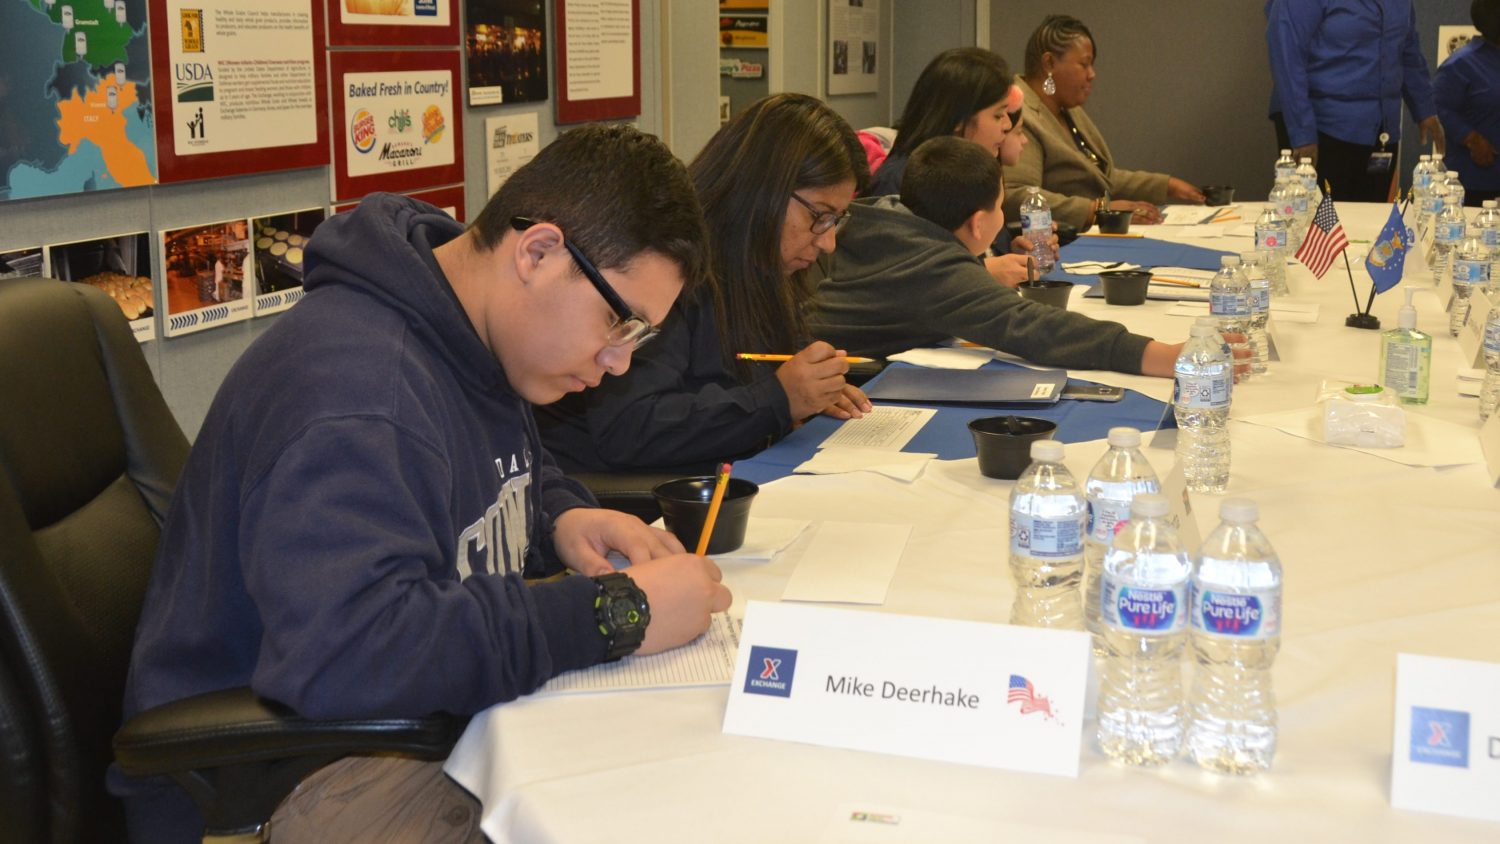 'A Taste of Home': Army & Air Force Exchange Service Enlists Help from Students at Dallas' Advantage Academy to Taste-Test School Meal Options for Military Kids Overseas